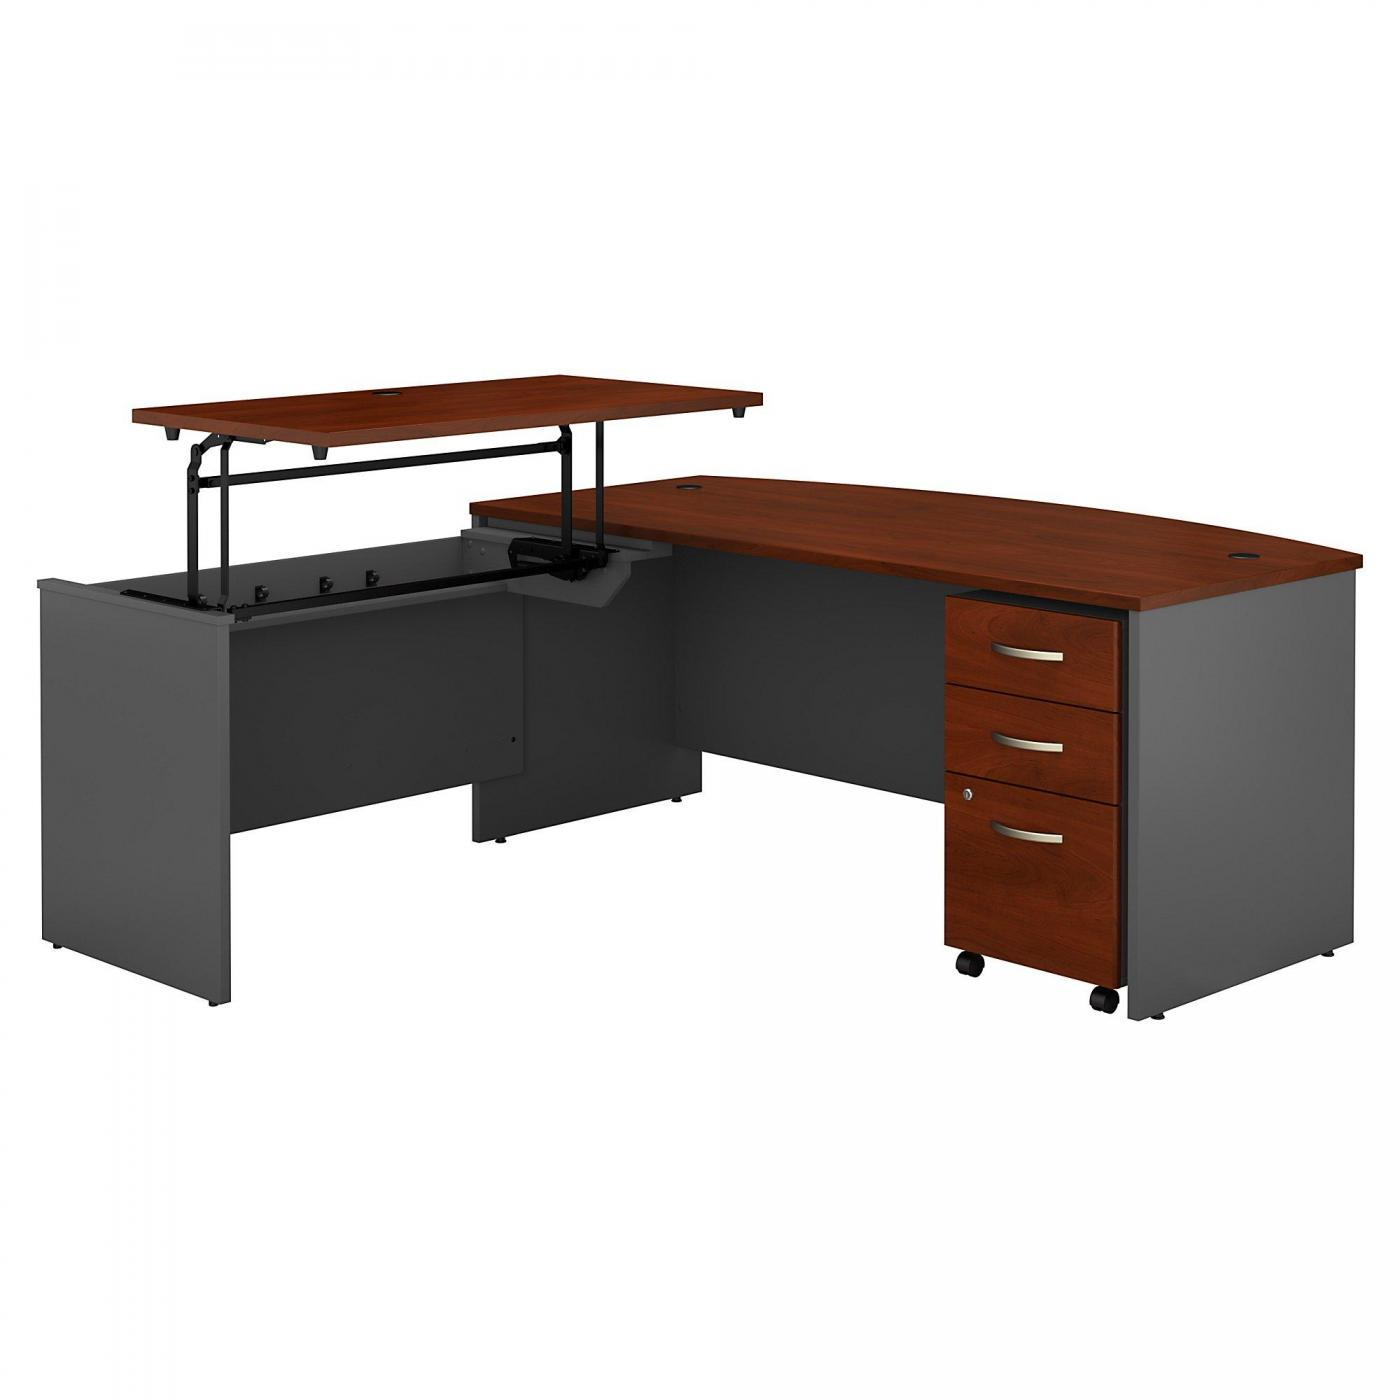 <font color=#c60><b>BUSH BUSINESS FURNITURE SERIES C 72W X 36D 3 POSITION BOW FRONT SIT TO STAND L SHAPED DESK WITH MOBILE FILE CABINET. FREE SHIPPING</font></b></font></b>